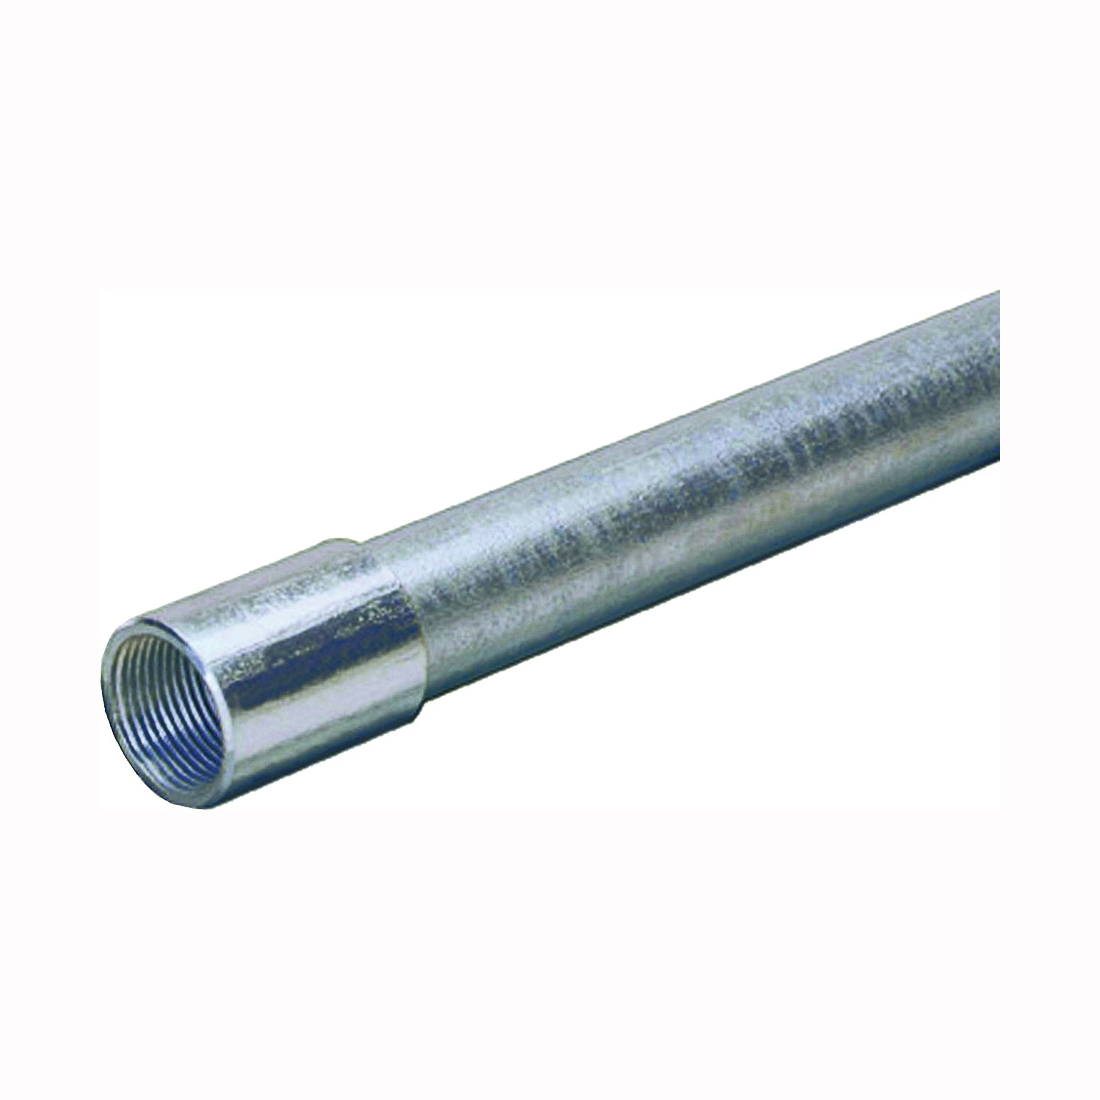 Picture of Allied Tube & Conduit 103085 Rigid Conduit, 1.66 in OD, 10 ft L, 1-1/4 in Trade, Galvanized Steel